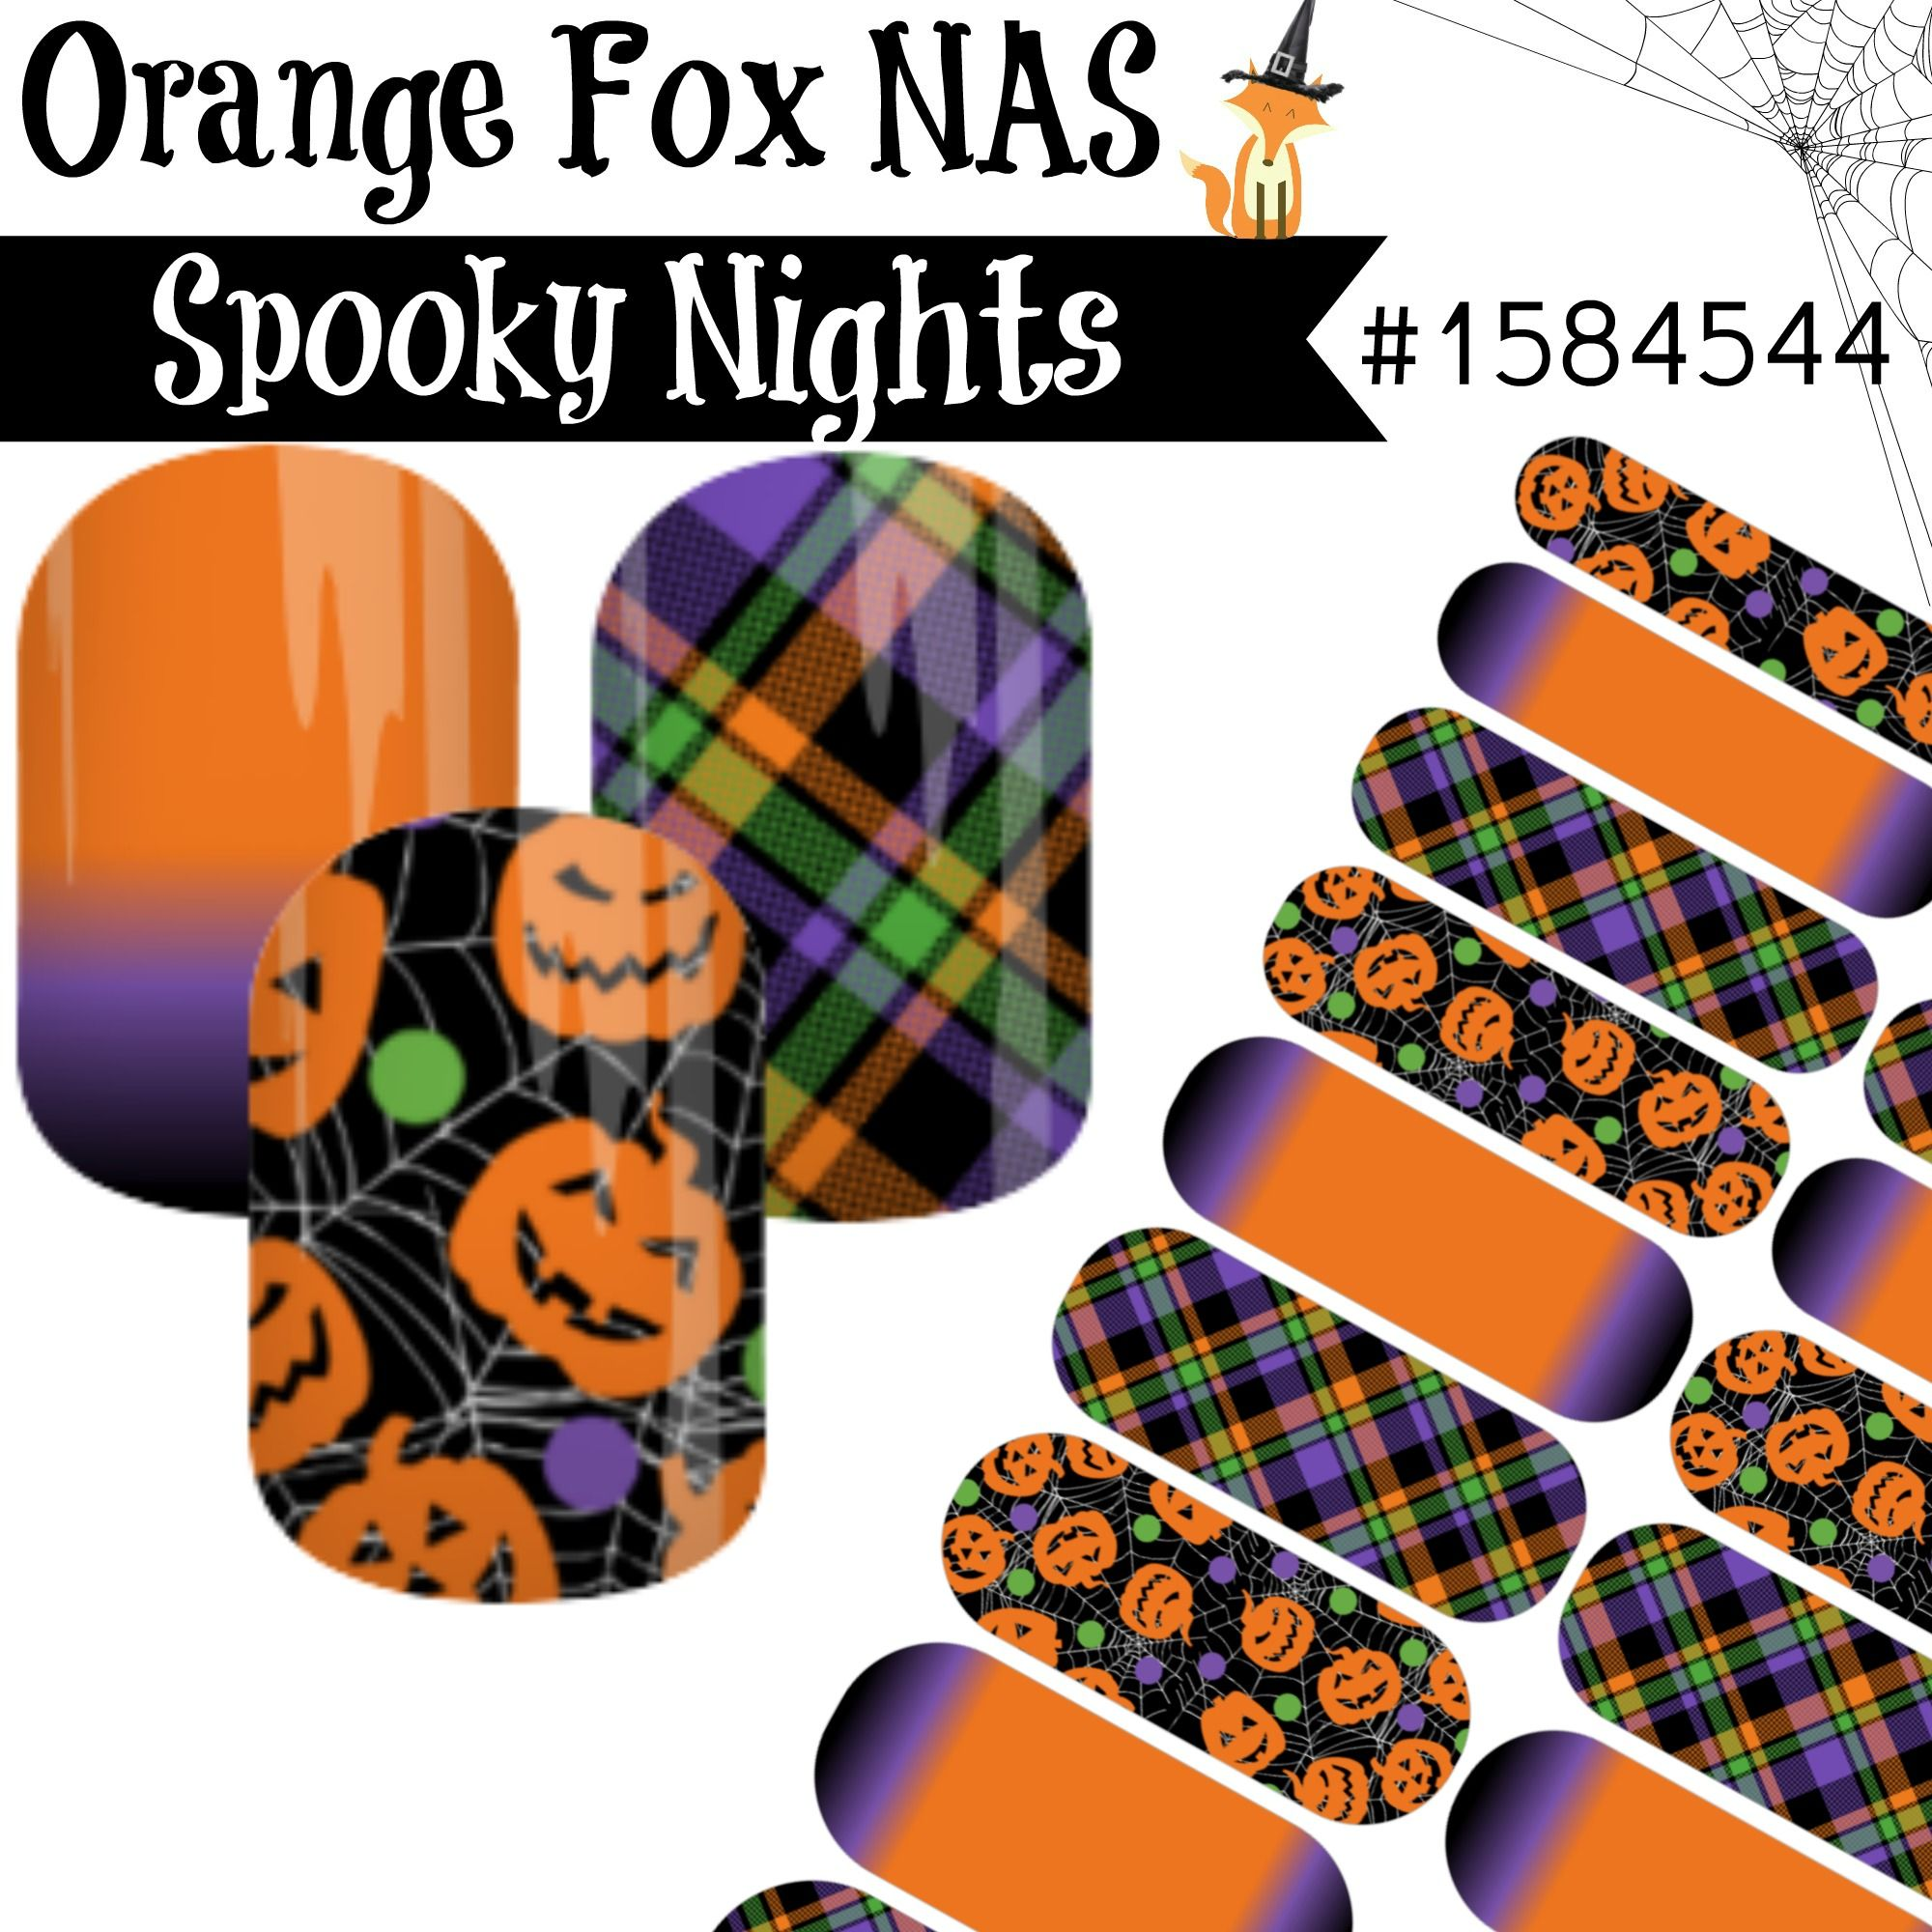 Halloween nail art pumpkins jack o lantern plaid orange black purple ...